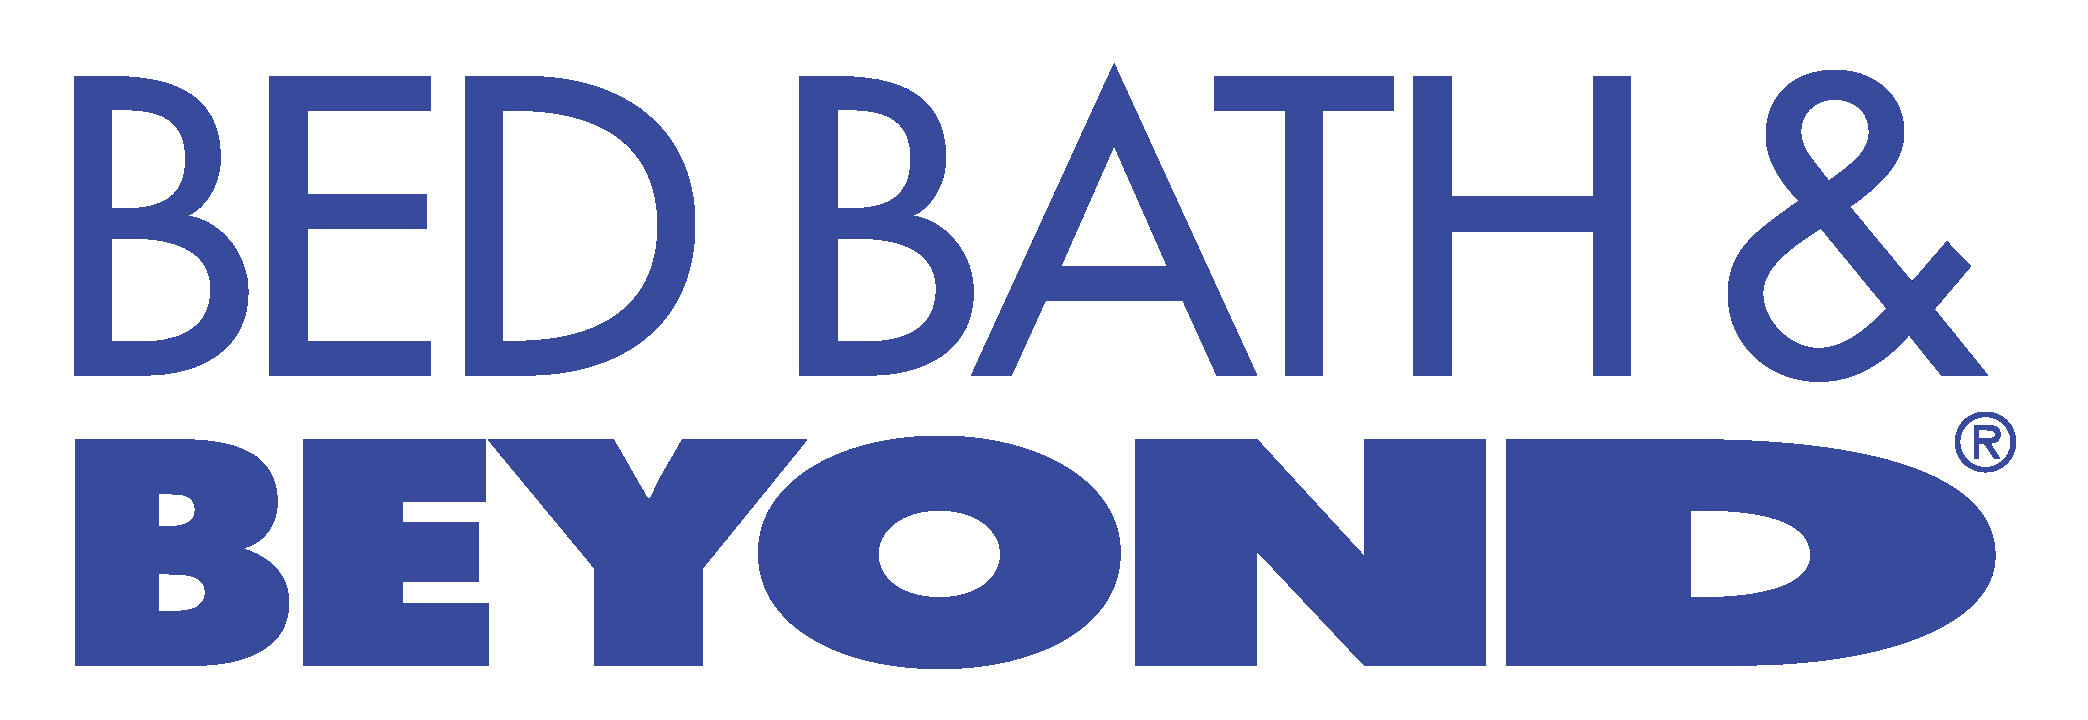 Bed Bath and Beyond Logo transparent PNG.